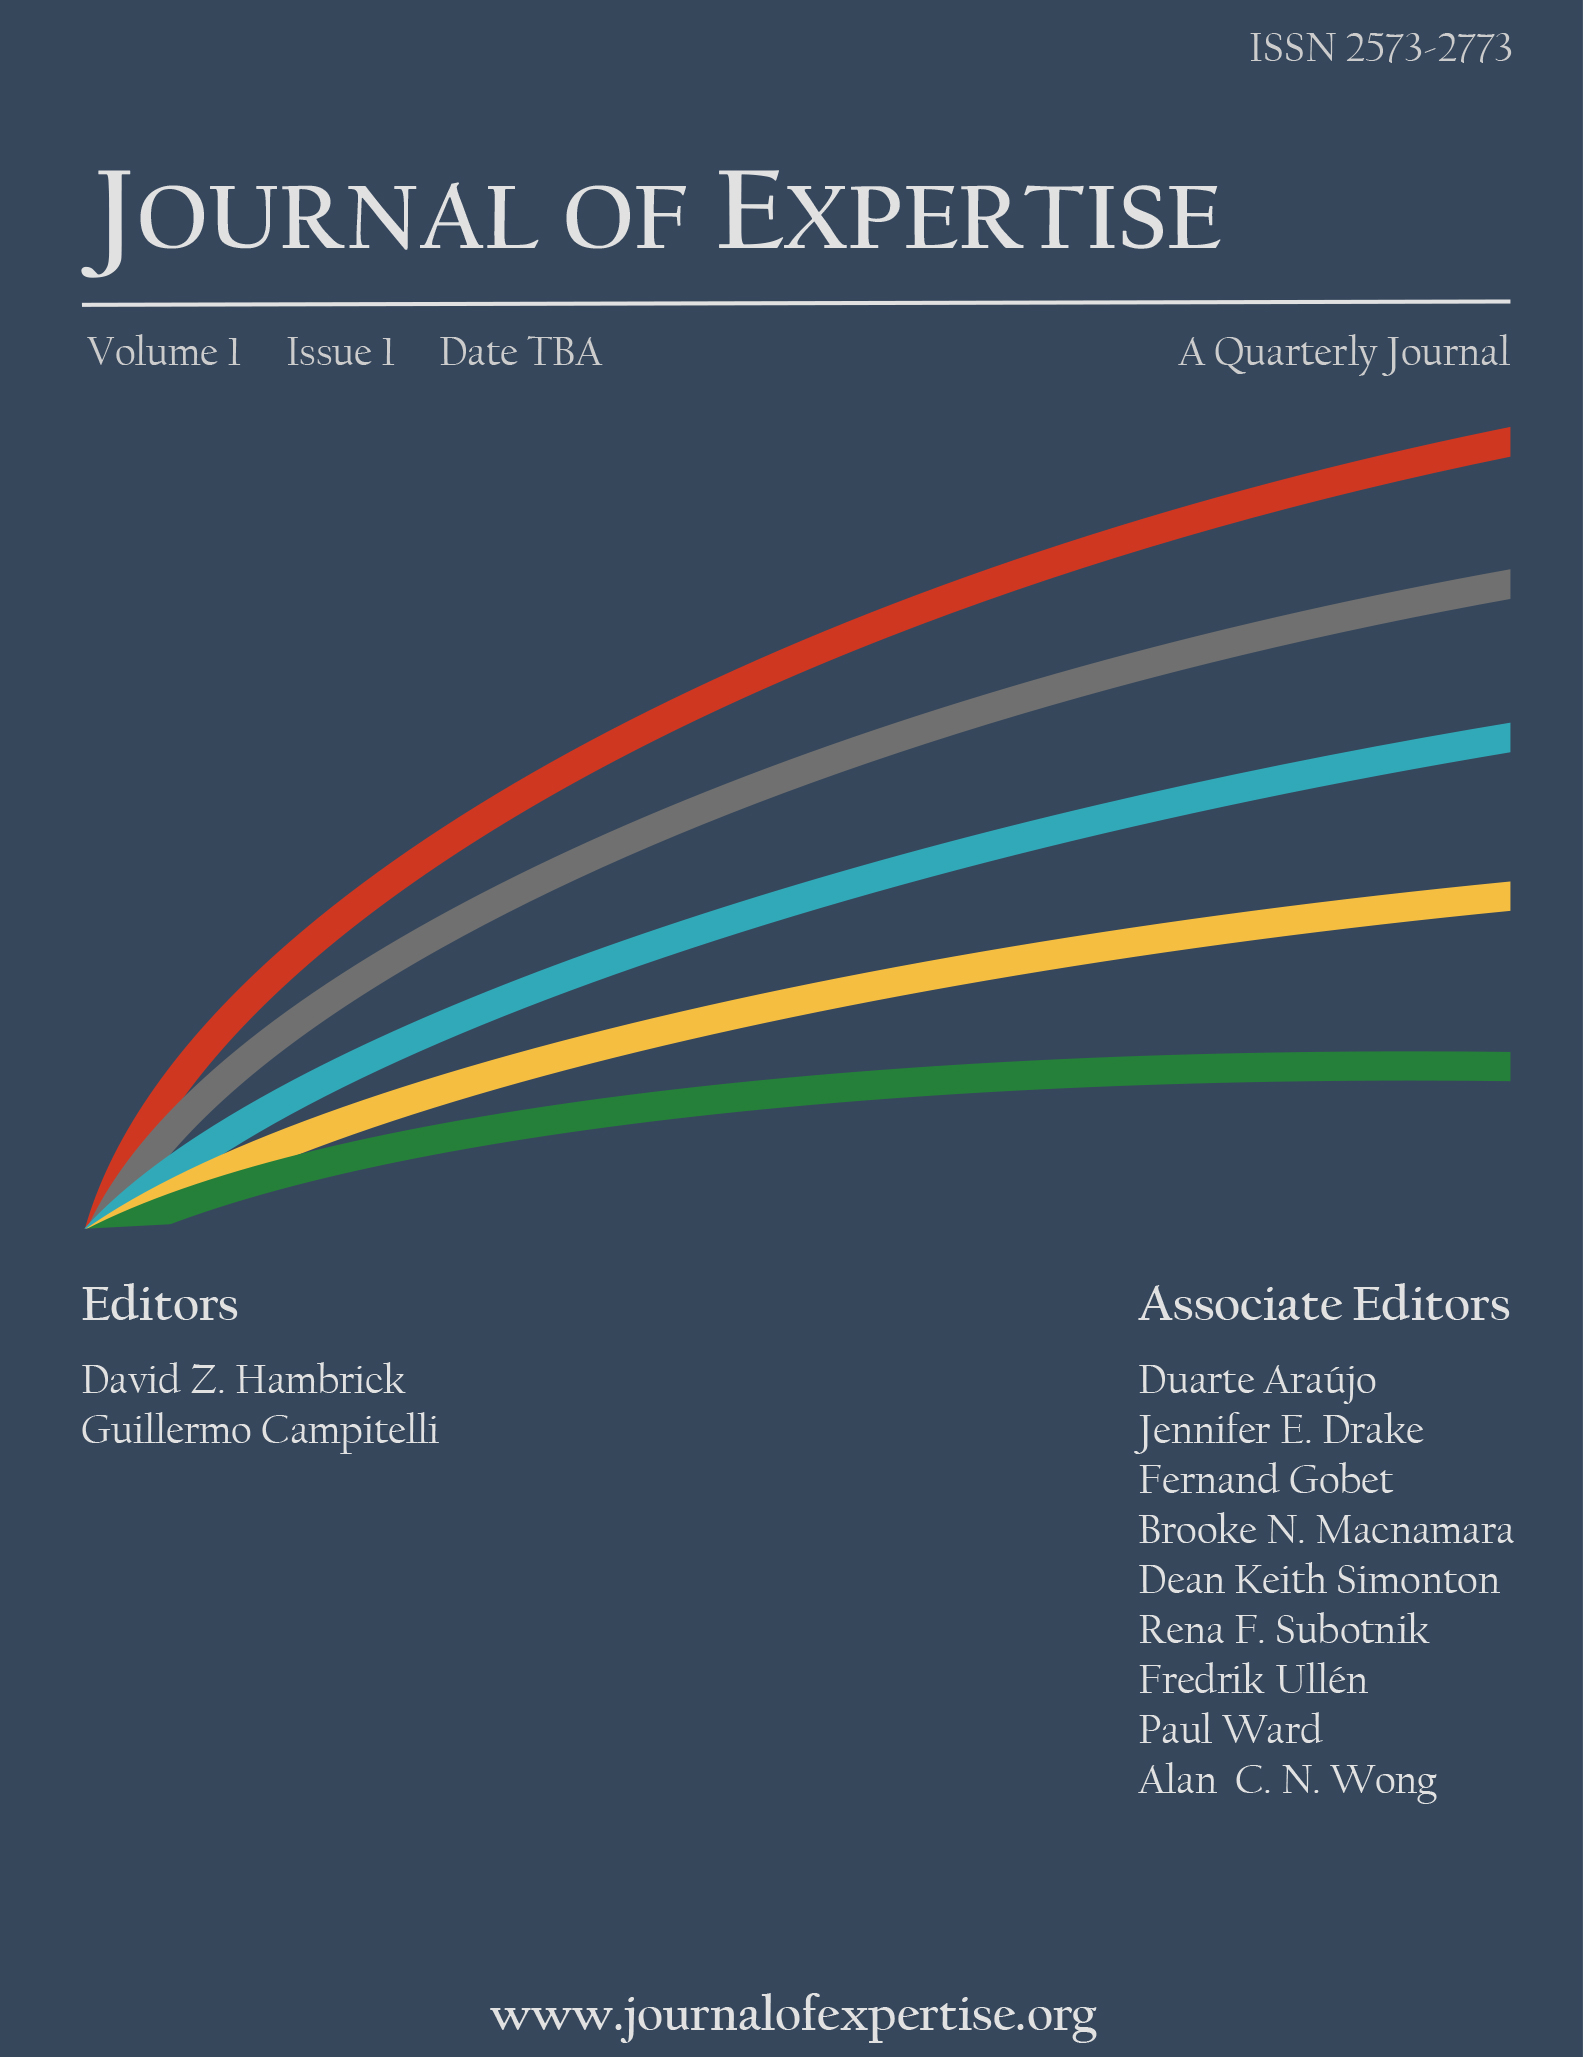 Journal of Expertise Main Cover